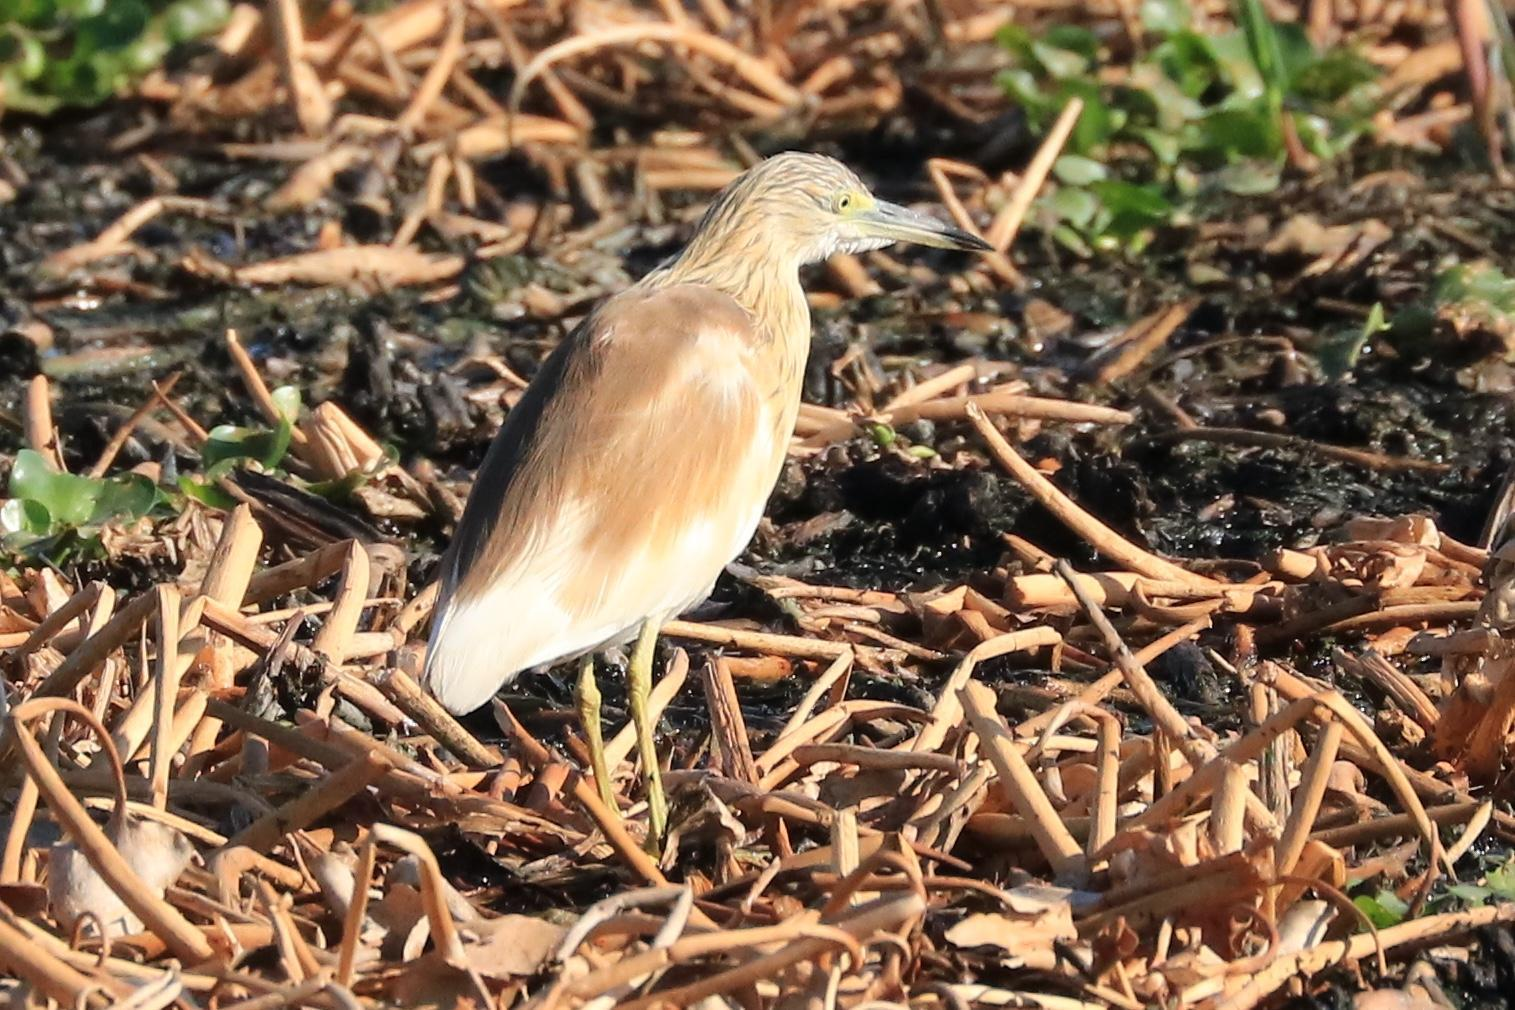 Squacco Heron Photo by Kathleen John